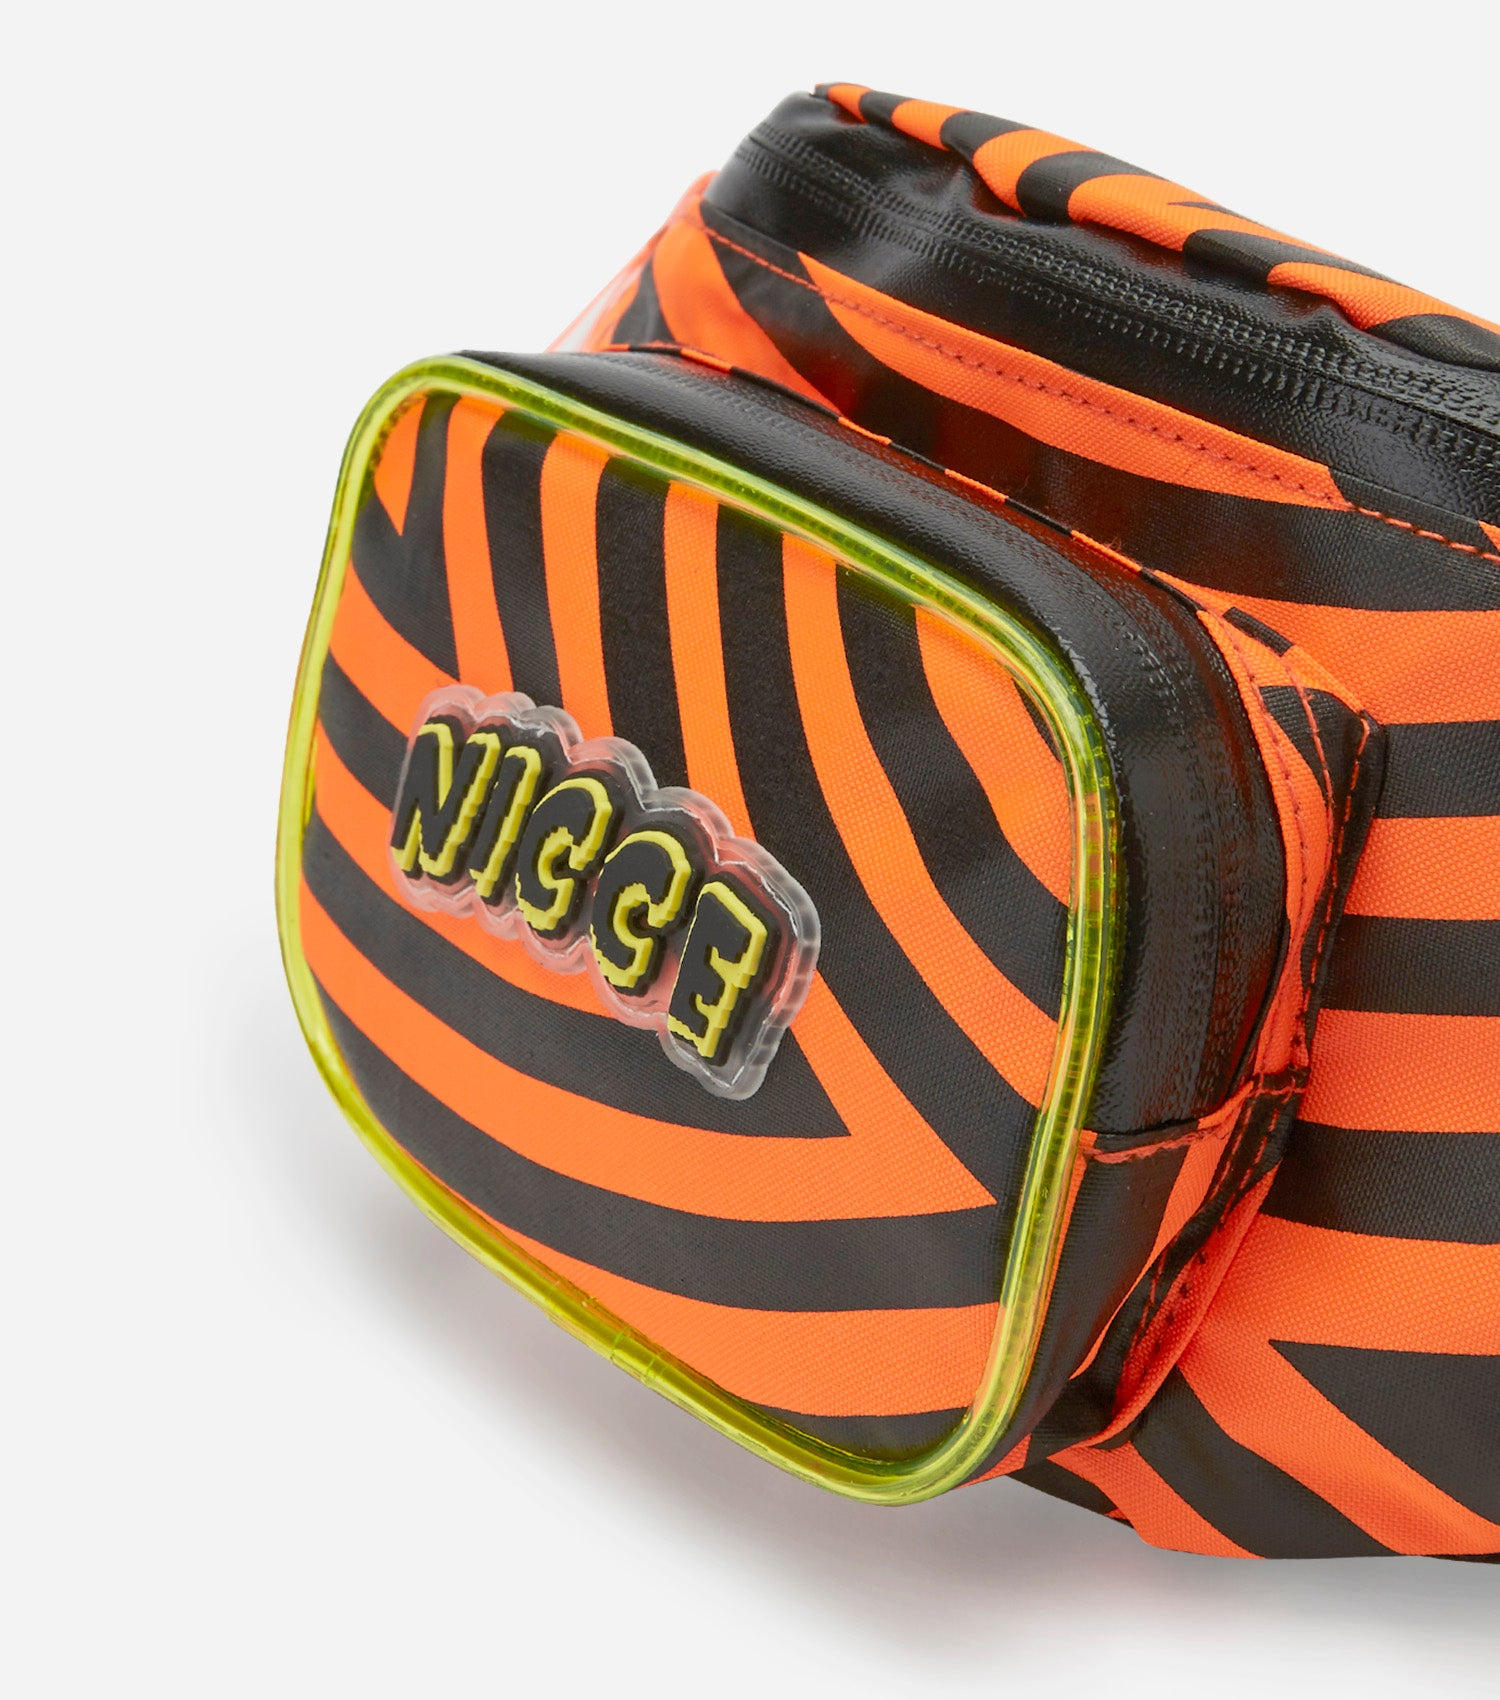 NICCE Womens Creep Bag | Shocking Orange / Black, Bags